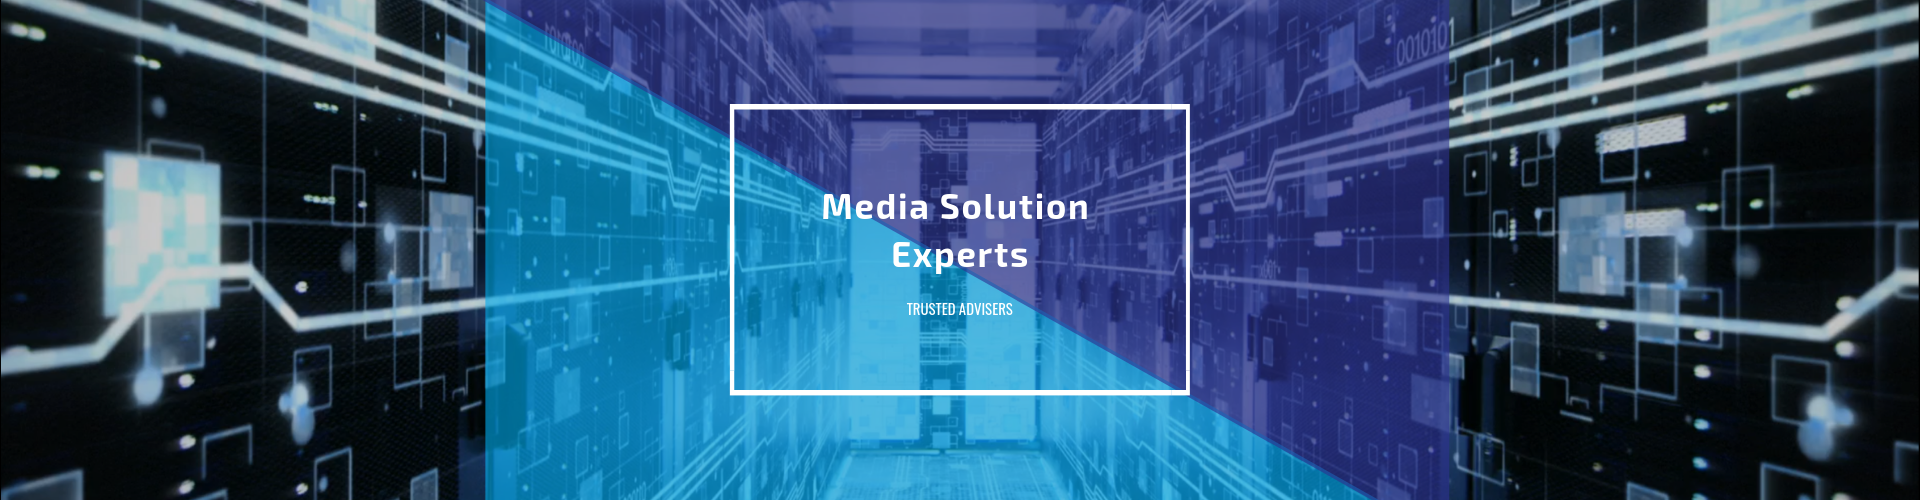 Media Solution Experts_2